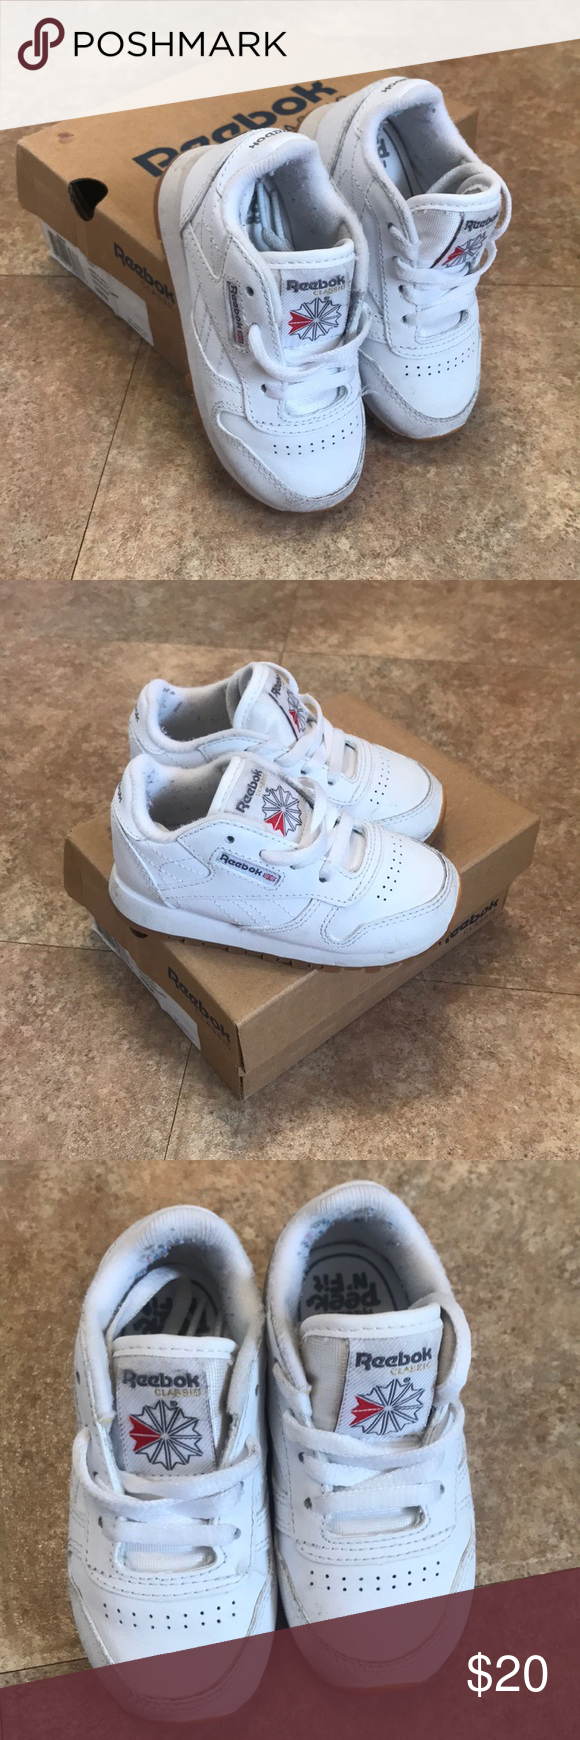 hacha Montaña desnudo  Reebok Classic Leather Shoe Toddler Size US 6 Gently used. Great condition.  Original photo. Please check photo for… | Reebok classic, Classic leather, Leather  shoes